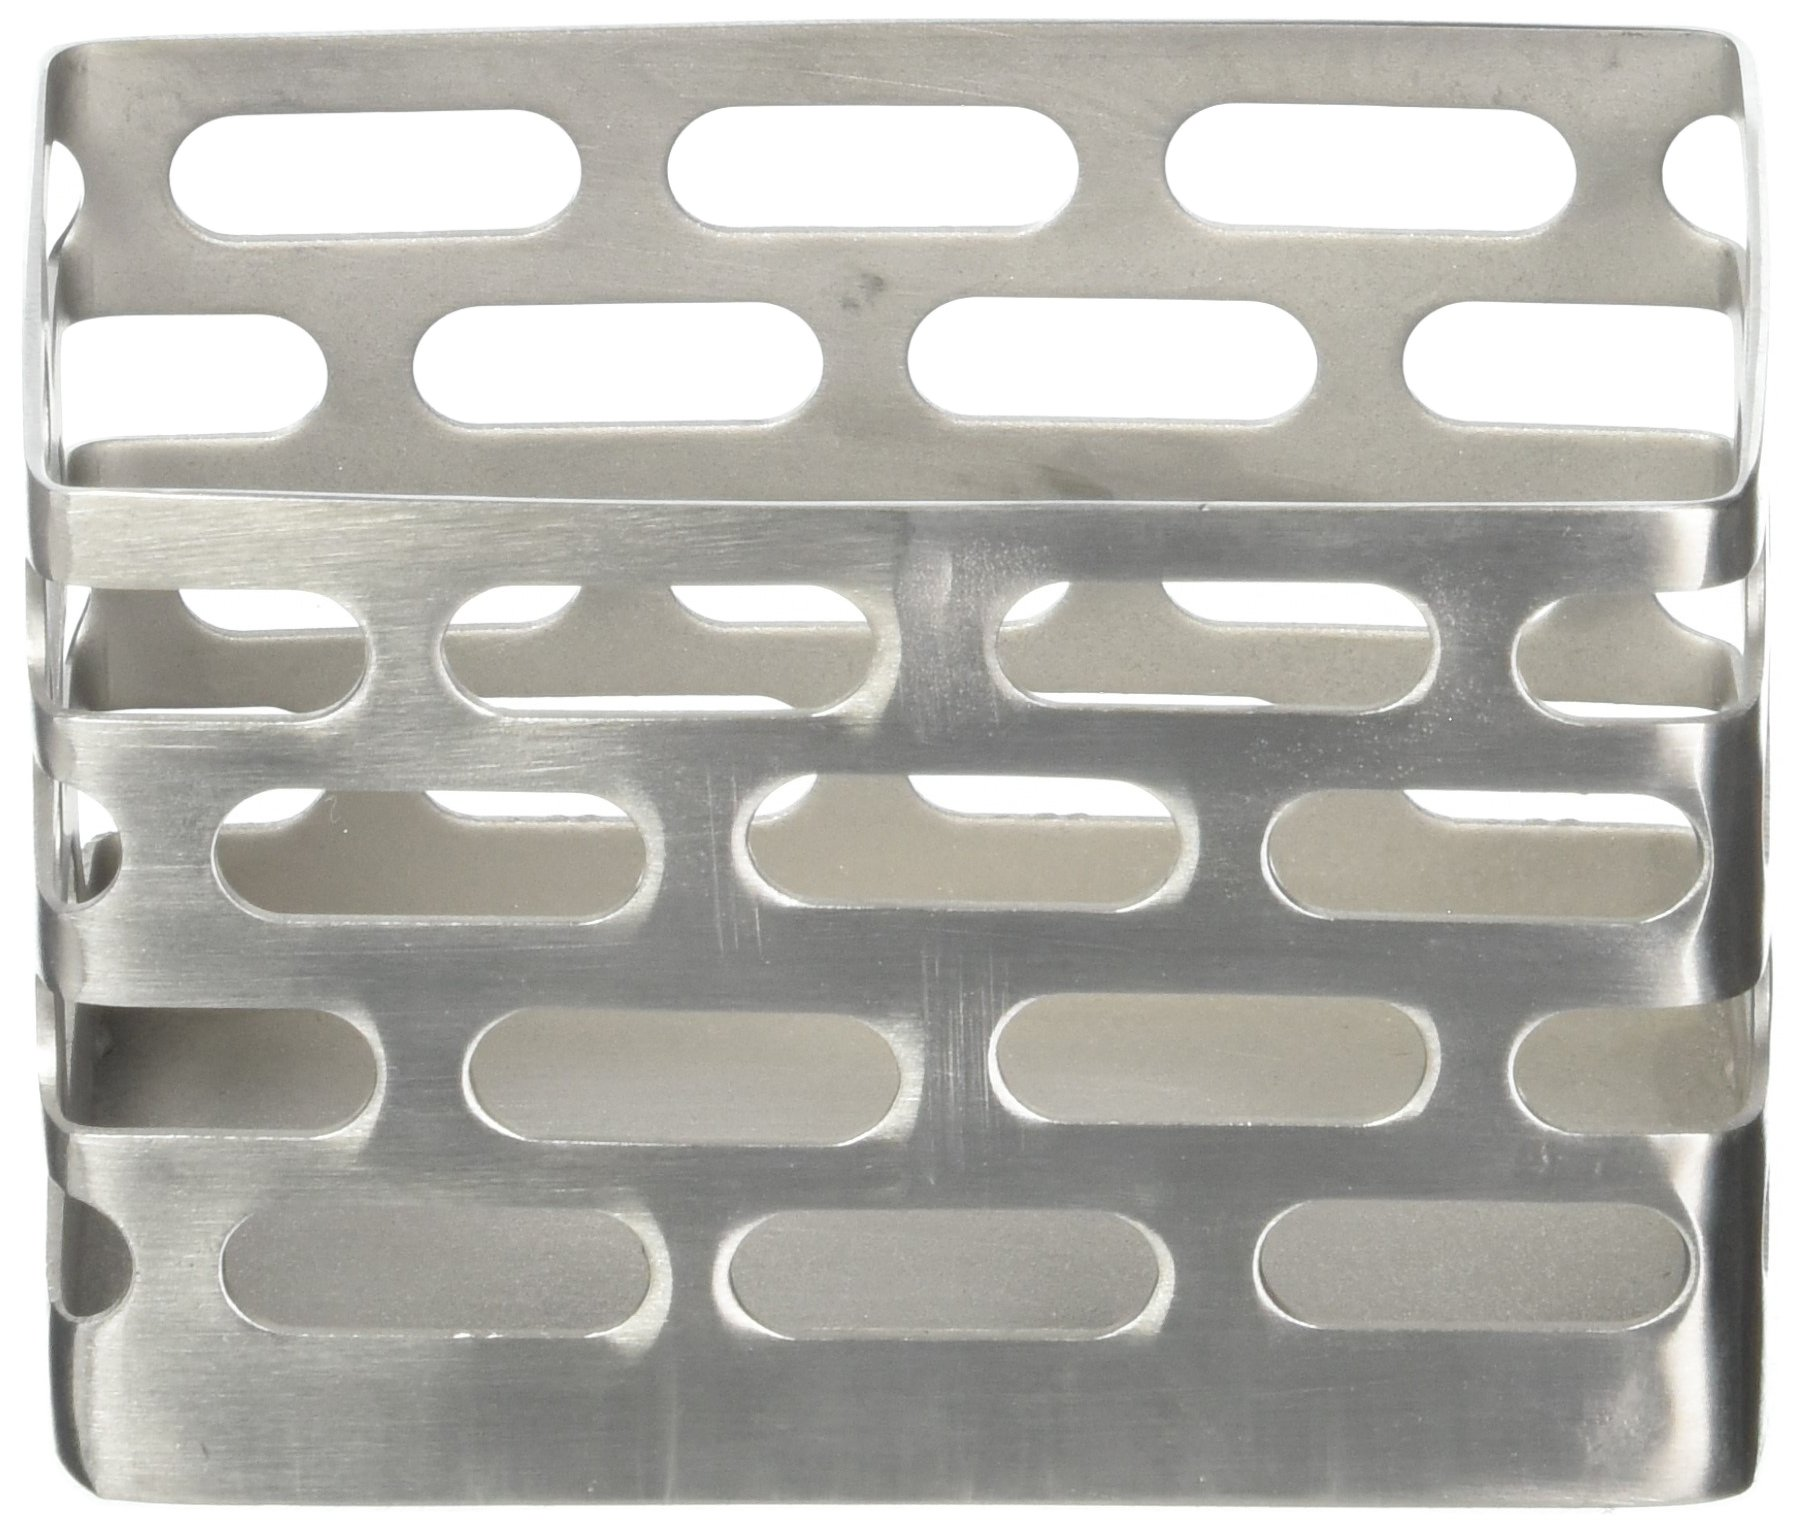 Mod18 Steelworks SB-61 Sugar Packet Holder, Brushed Stainless